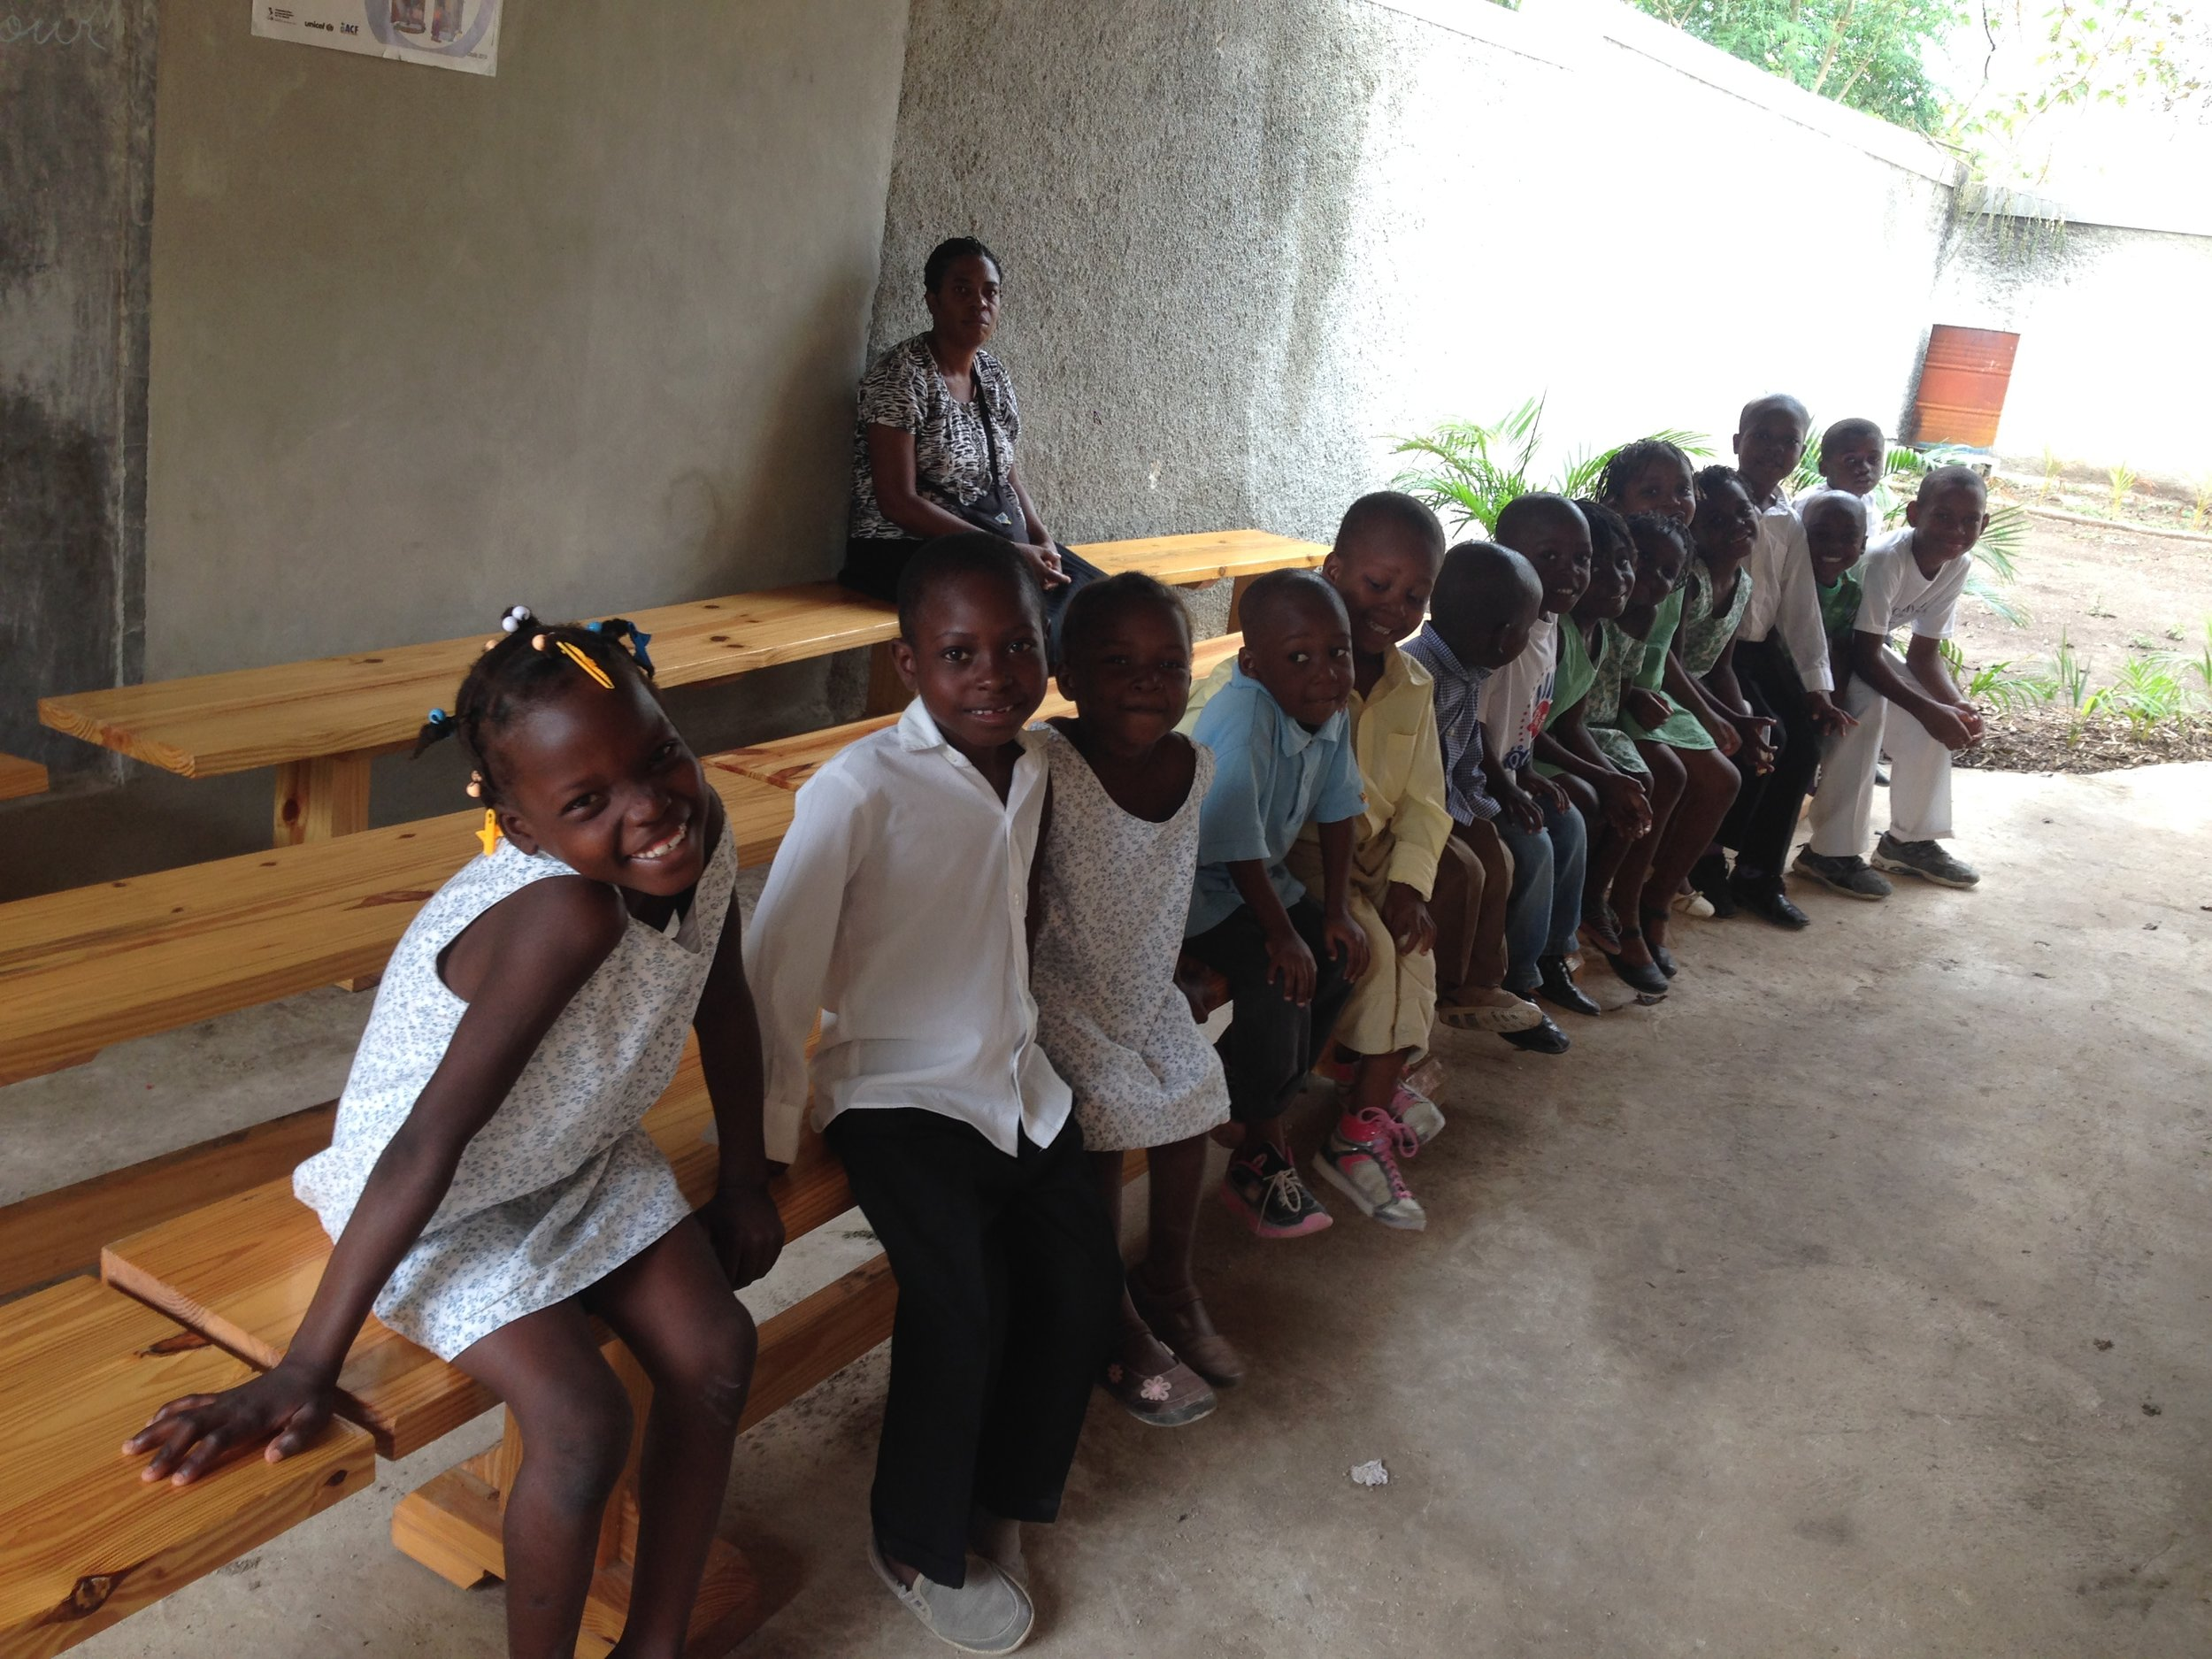 Children from an orphanage visiting the clinic -